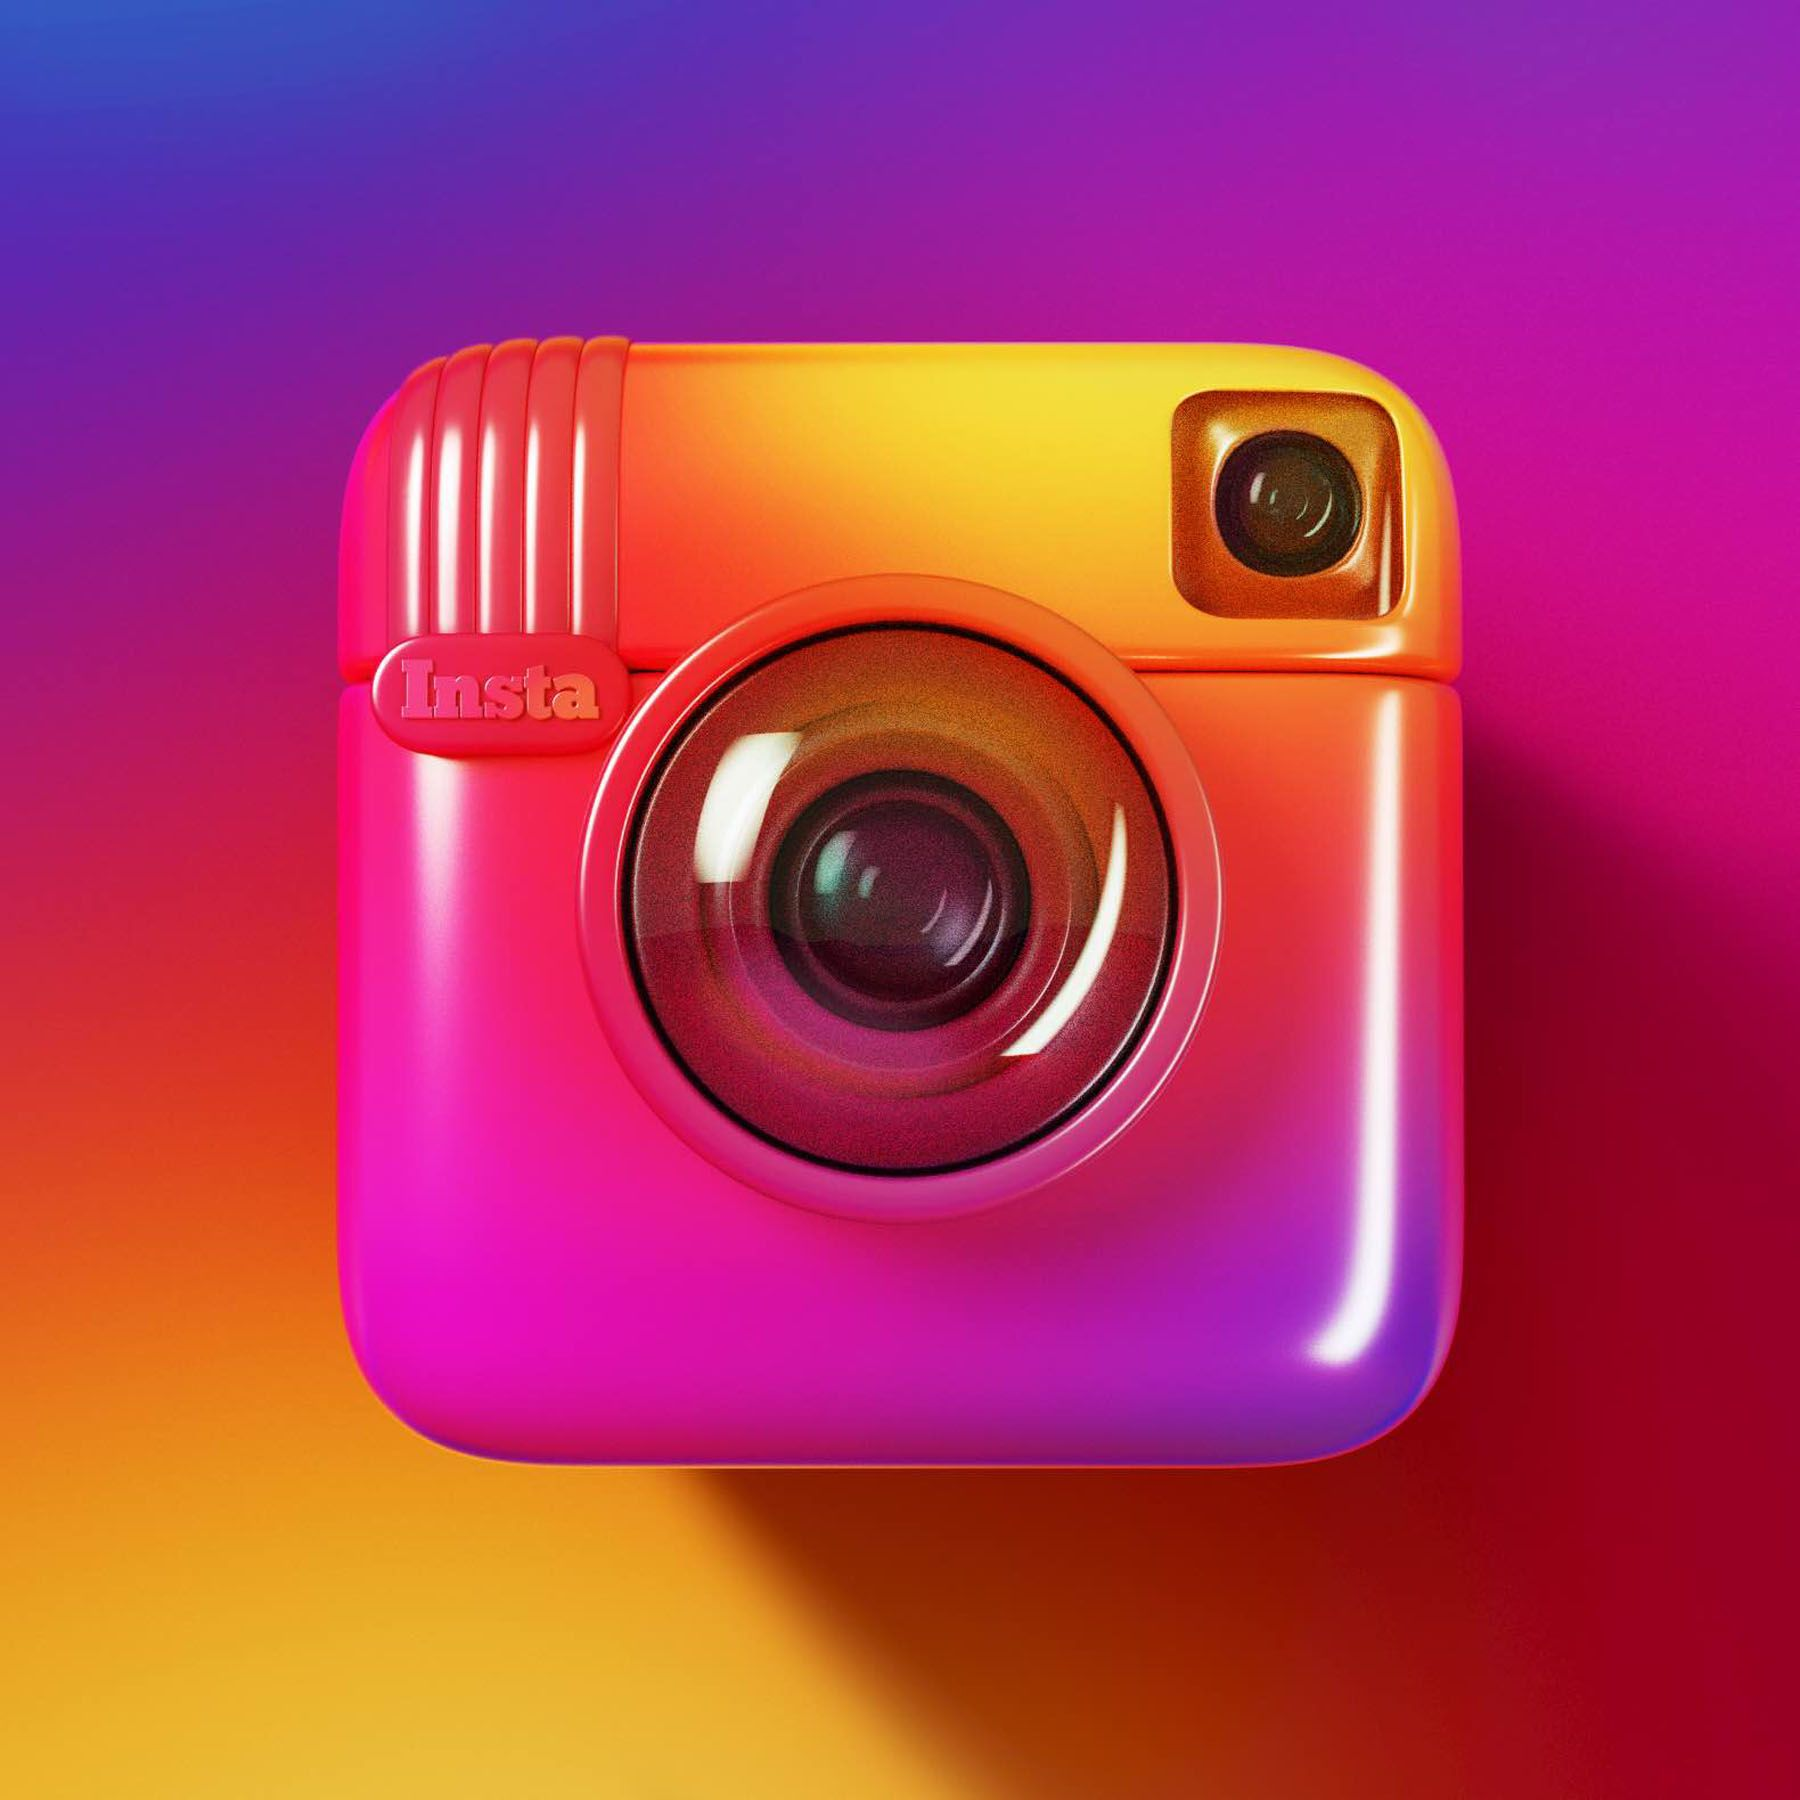 3D Illustration CGI design instagram Old instagram